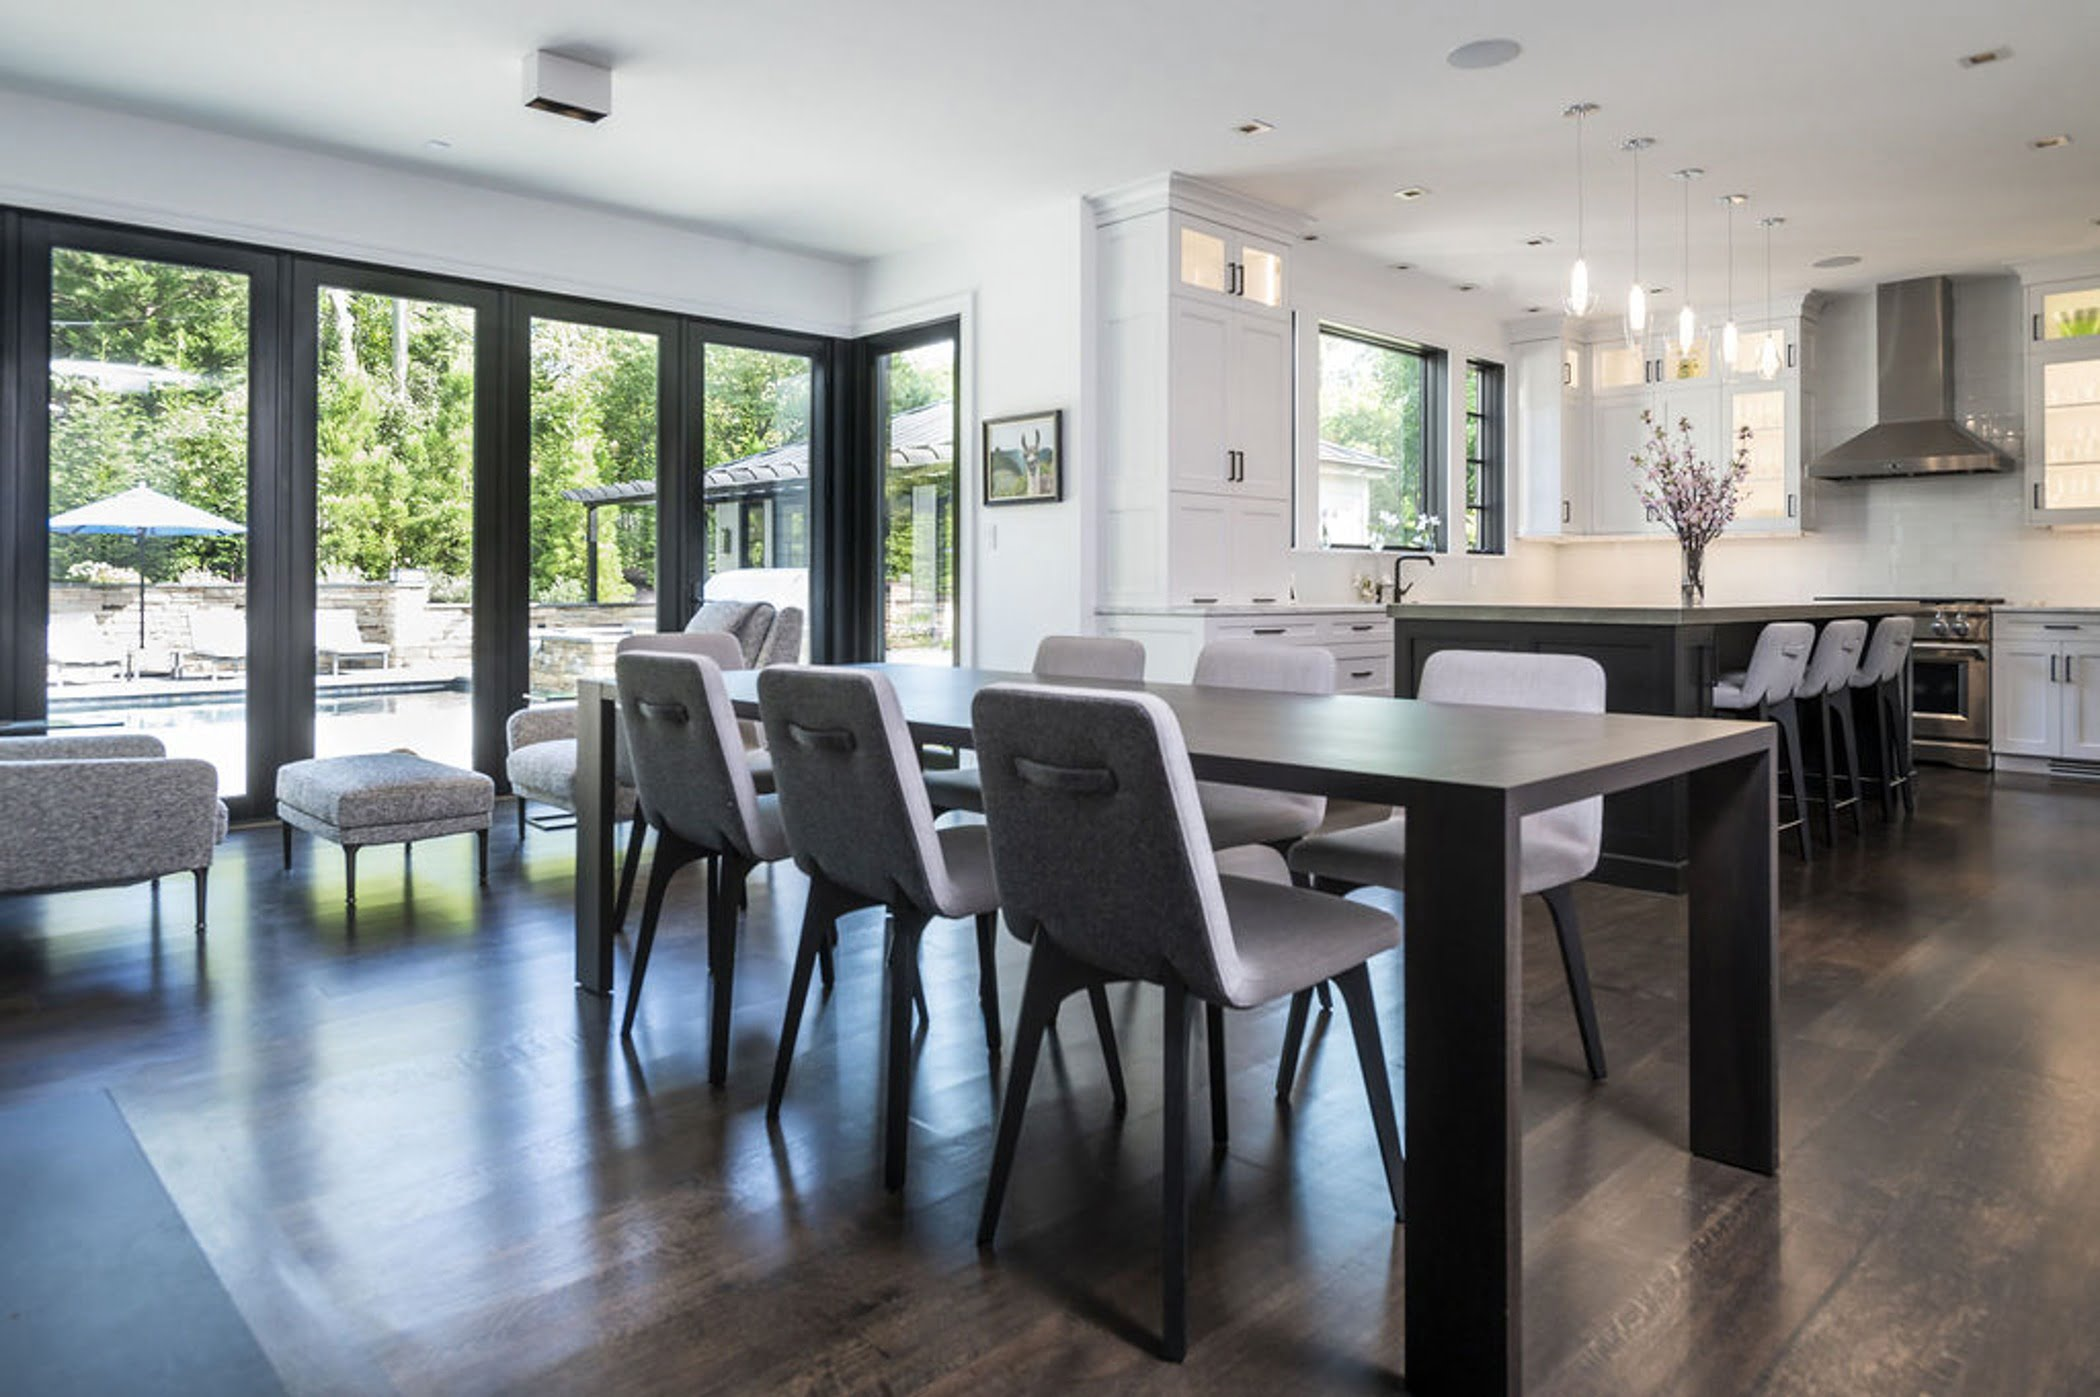 Modern dining area with sleek dark hardwood table and flooring, and matching dining chairs